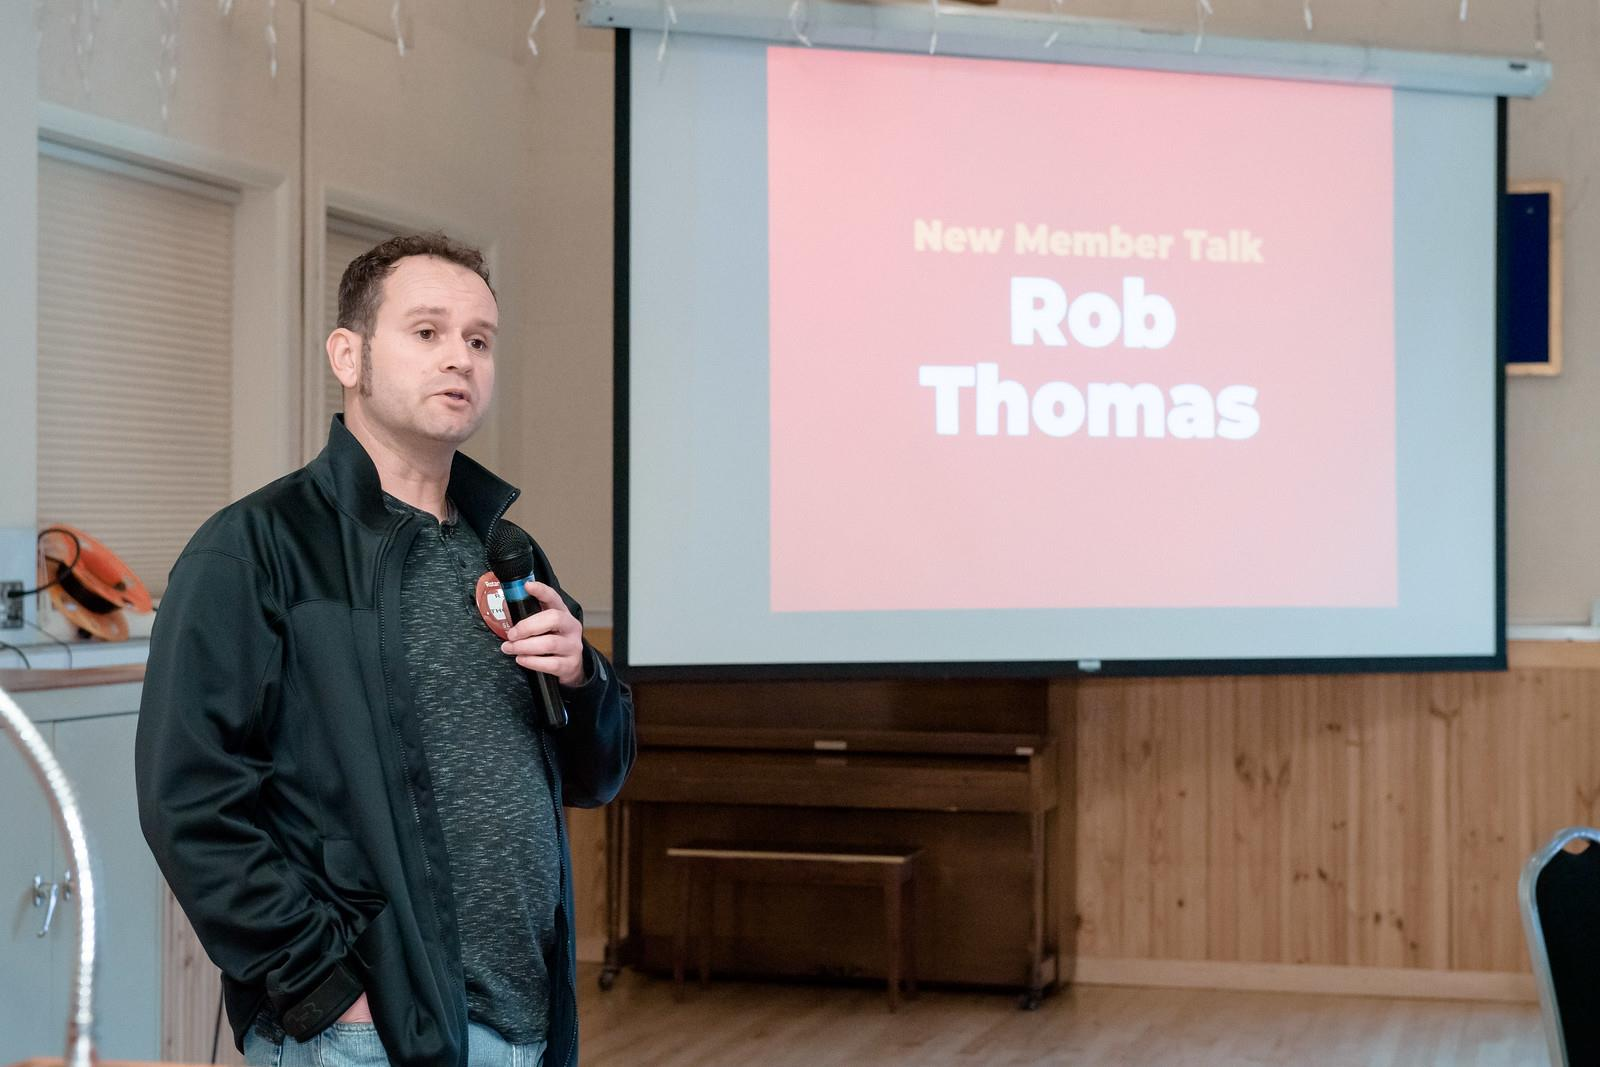 New Member Talk – Rob Thomas